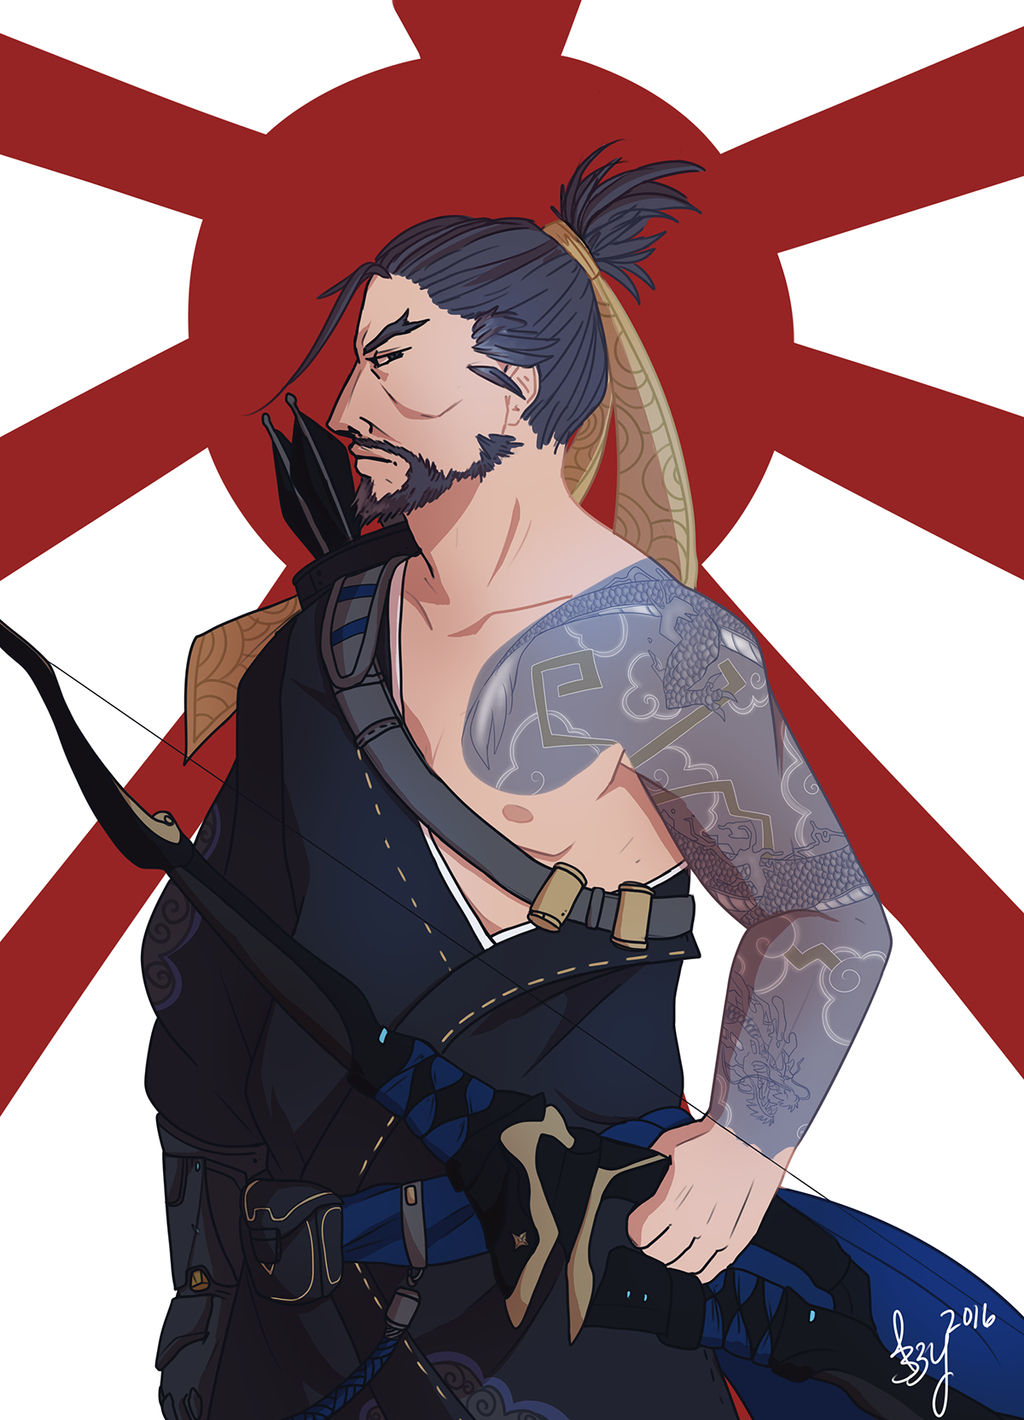 Hanzo by Lecoulte